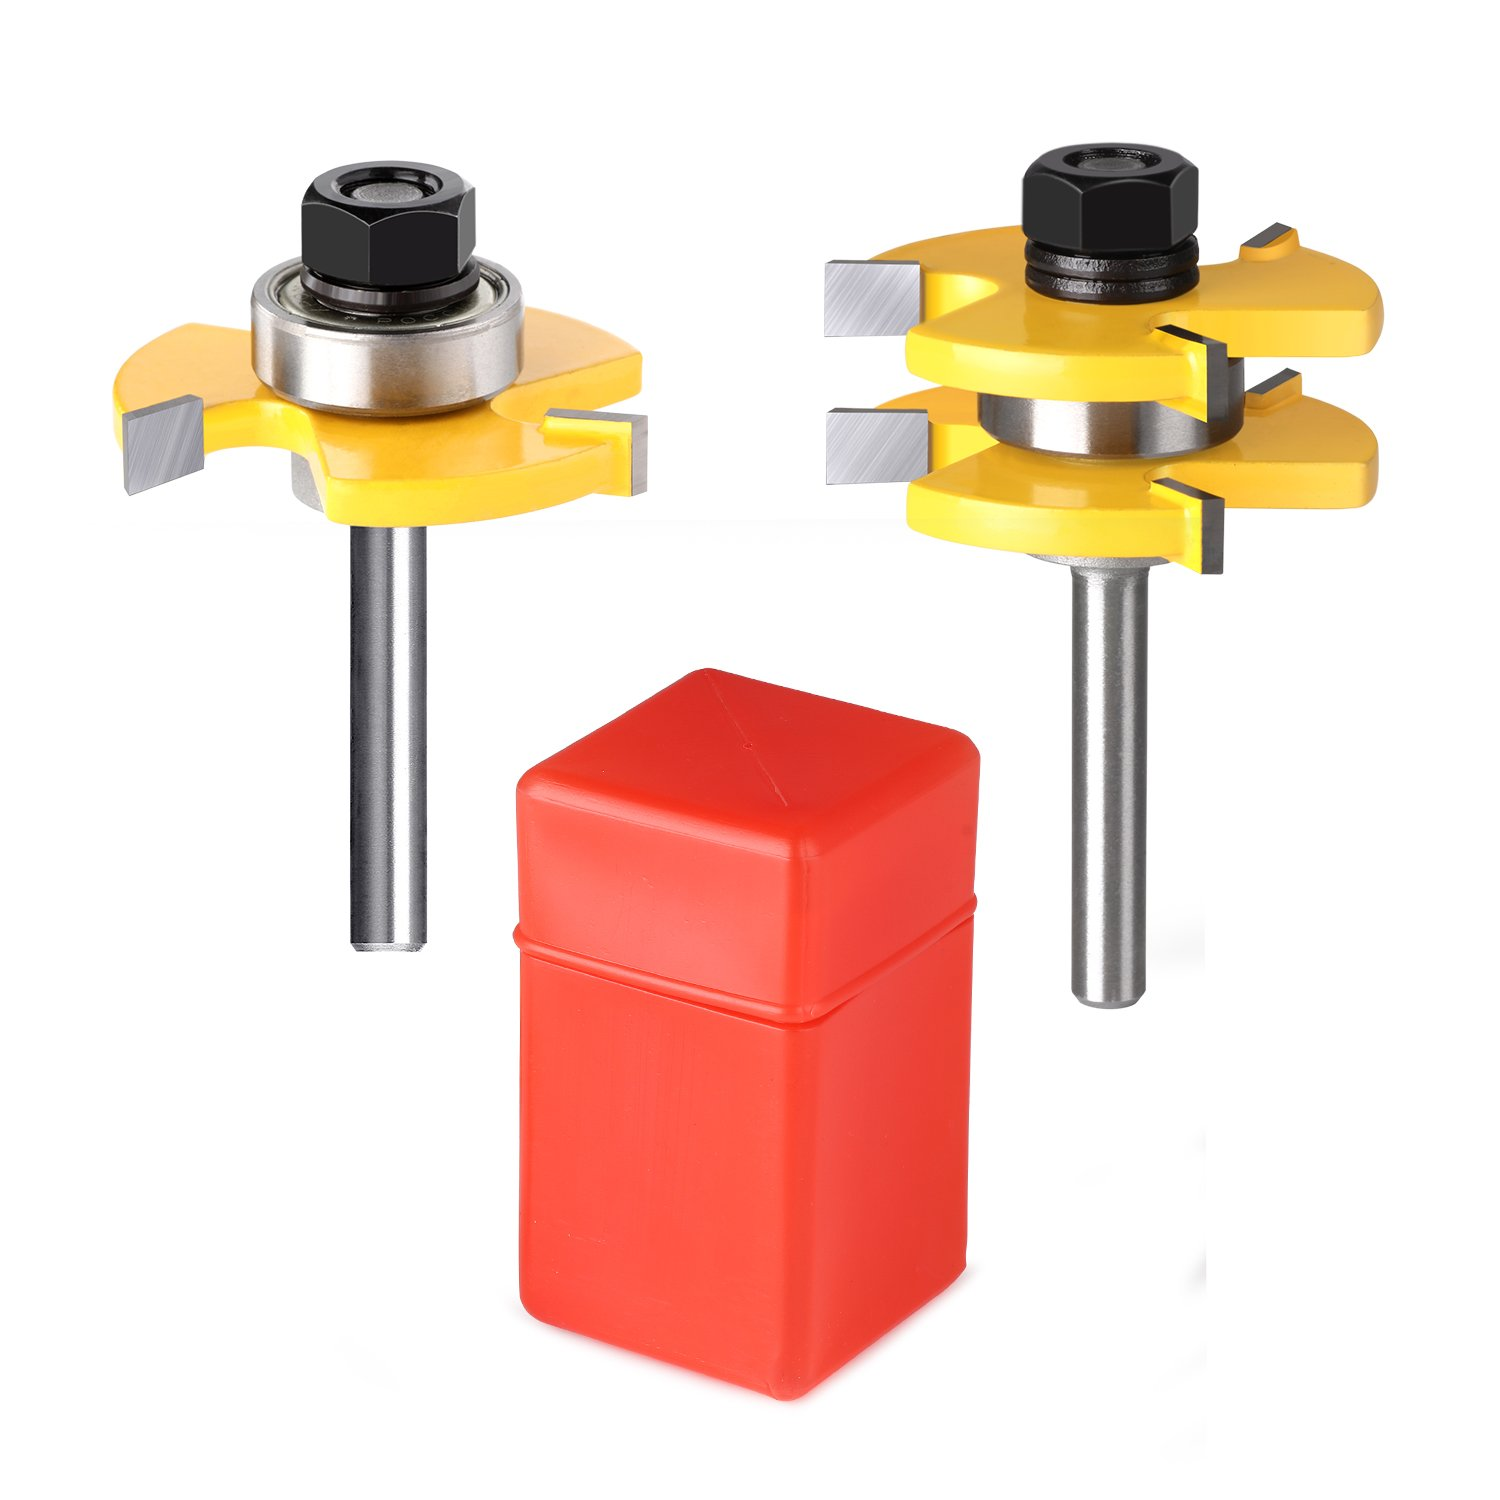 2PCS Tongue and Groove Router Bit, Grooving Router Bit, 3 Teeth Adjustable Tenon Cutter with 1/4'' Shank Wood Milling Saw Cutter Woodworking Tools